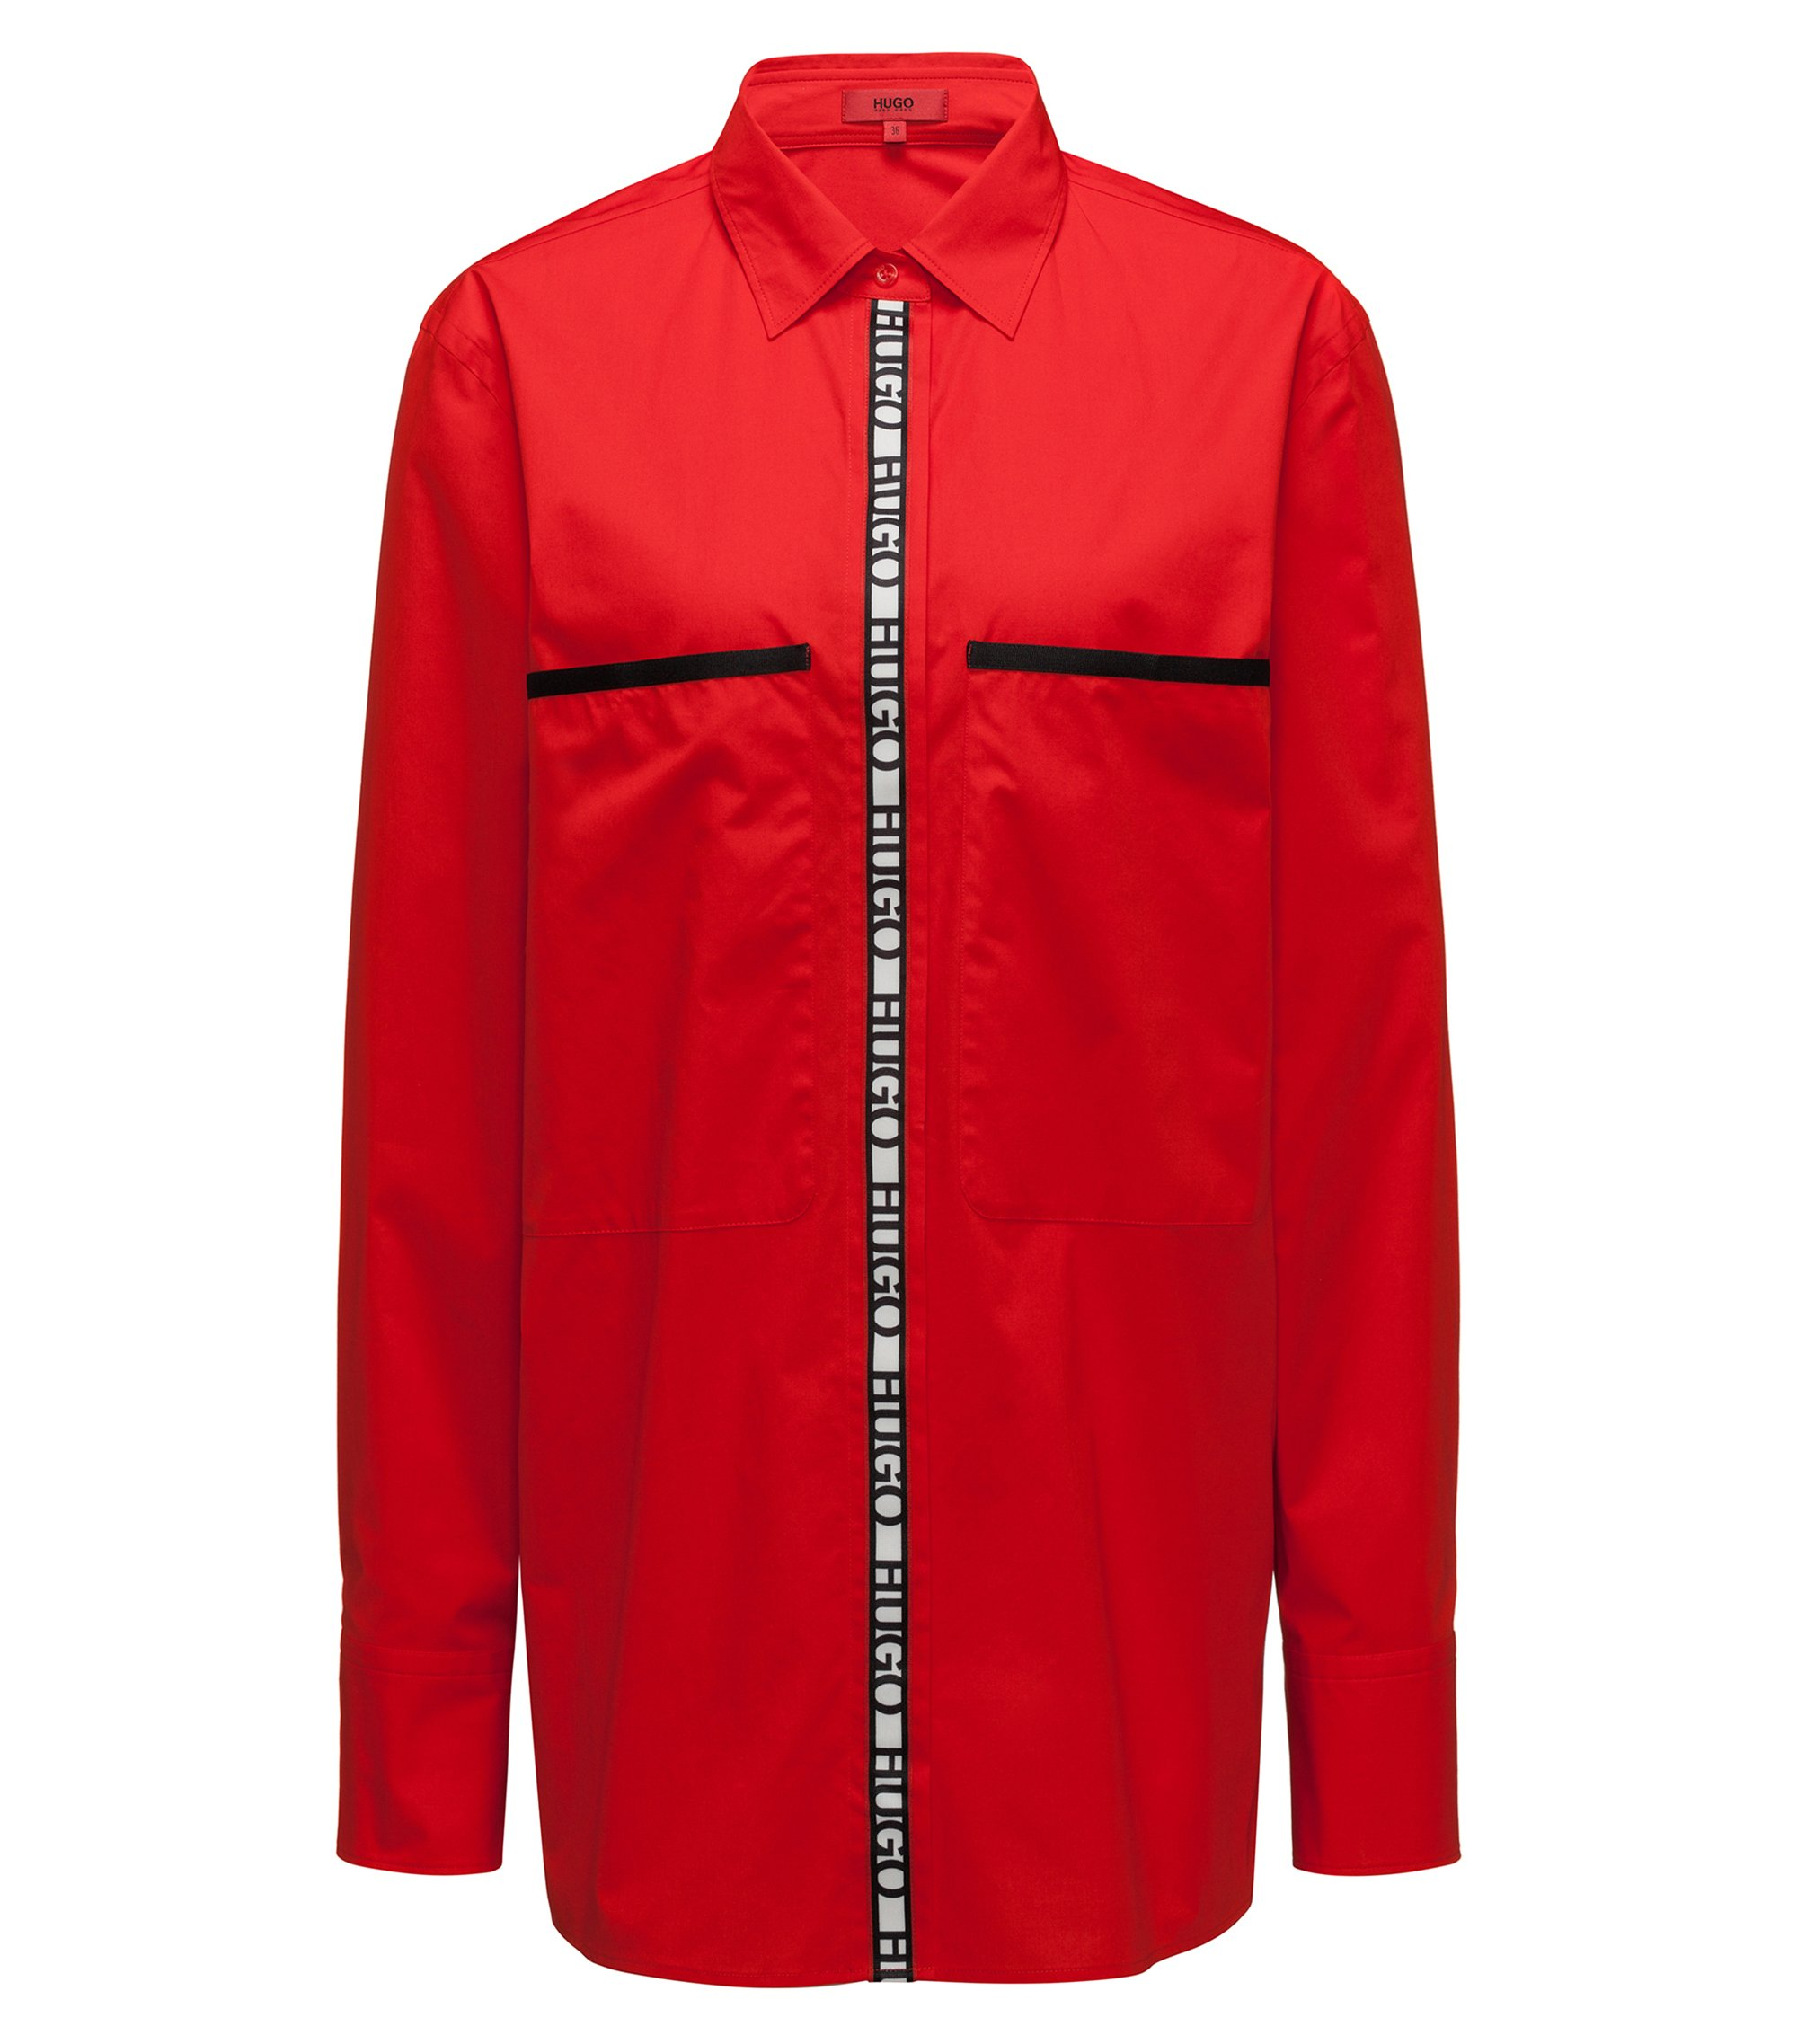 Chemisier Oversized Fit en coton stretch avec bande logo, Rouge